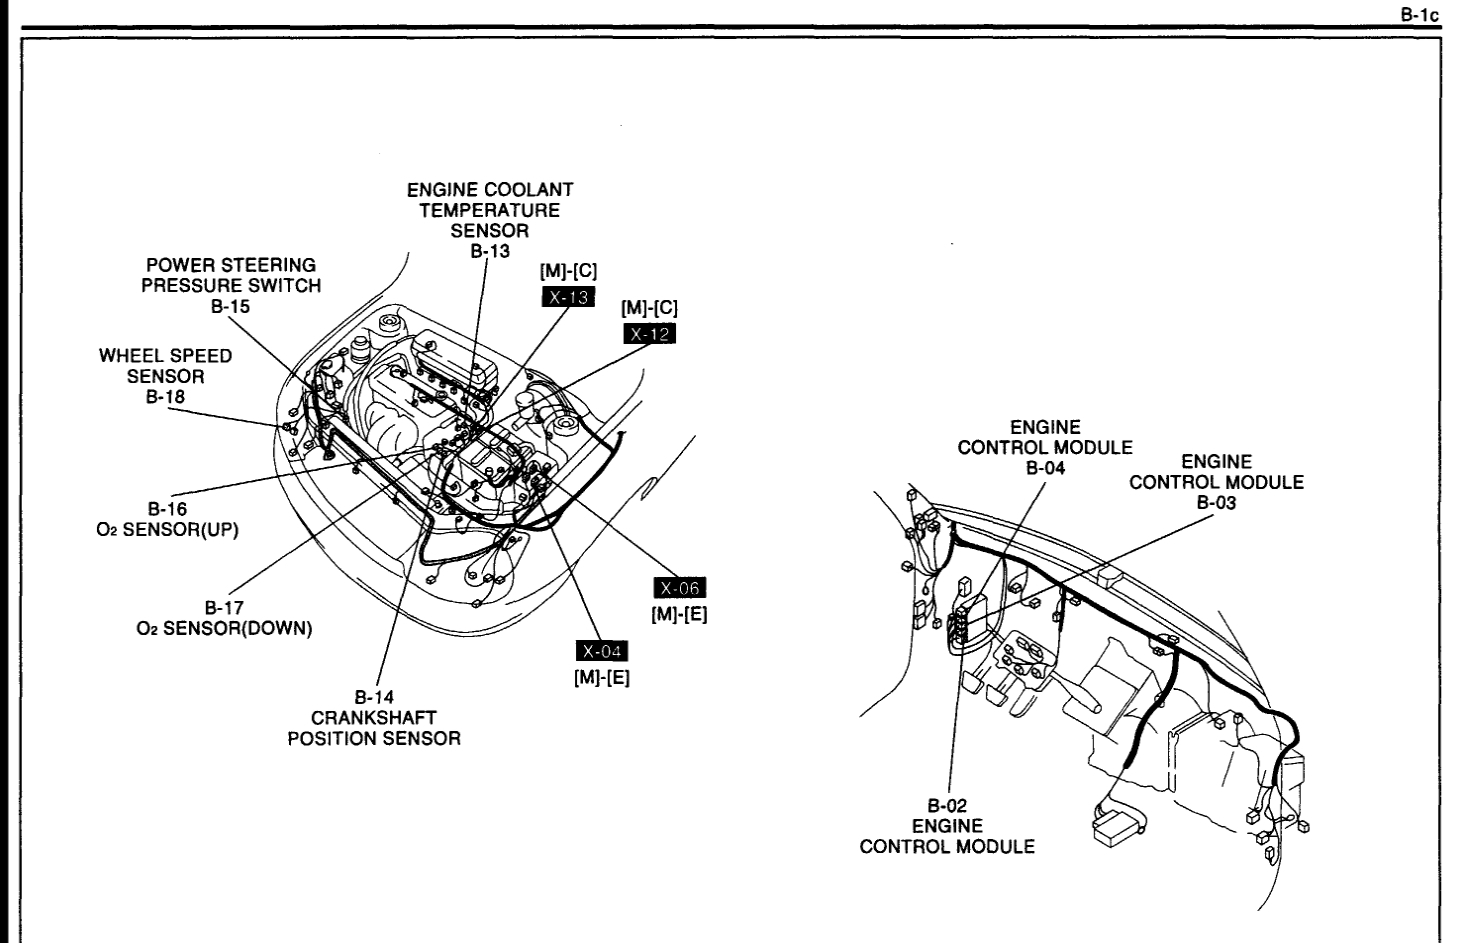 Transmission Not Shift First to Second Gear Properly and ... on kia spectra manual transmission problems, saturn diagram, transfer case diagram, kia transmission fill plug, ford drivetrain diagram, kia transmission filter, touareg parts diagram, 2005 chevy equinox engine diagram, 4l60e diagram, axle assembly diagram, kia soul transmission problems, vw front suspension diagram, kia 3.5 engine problems,